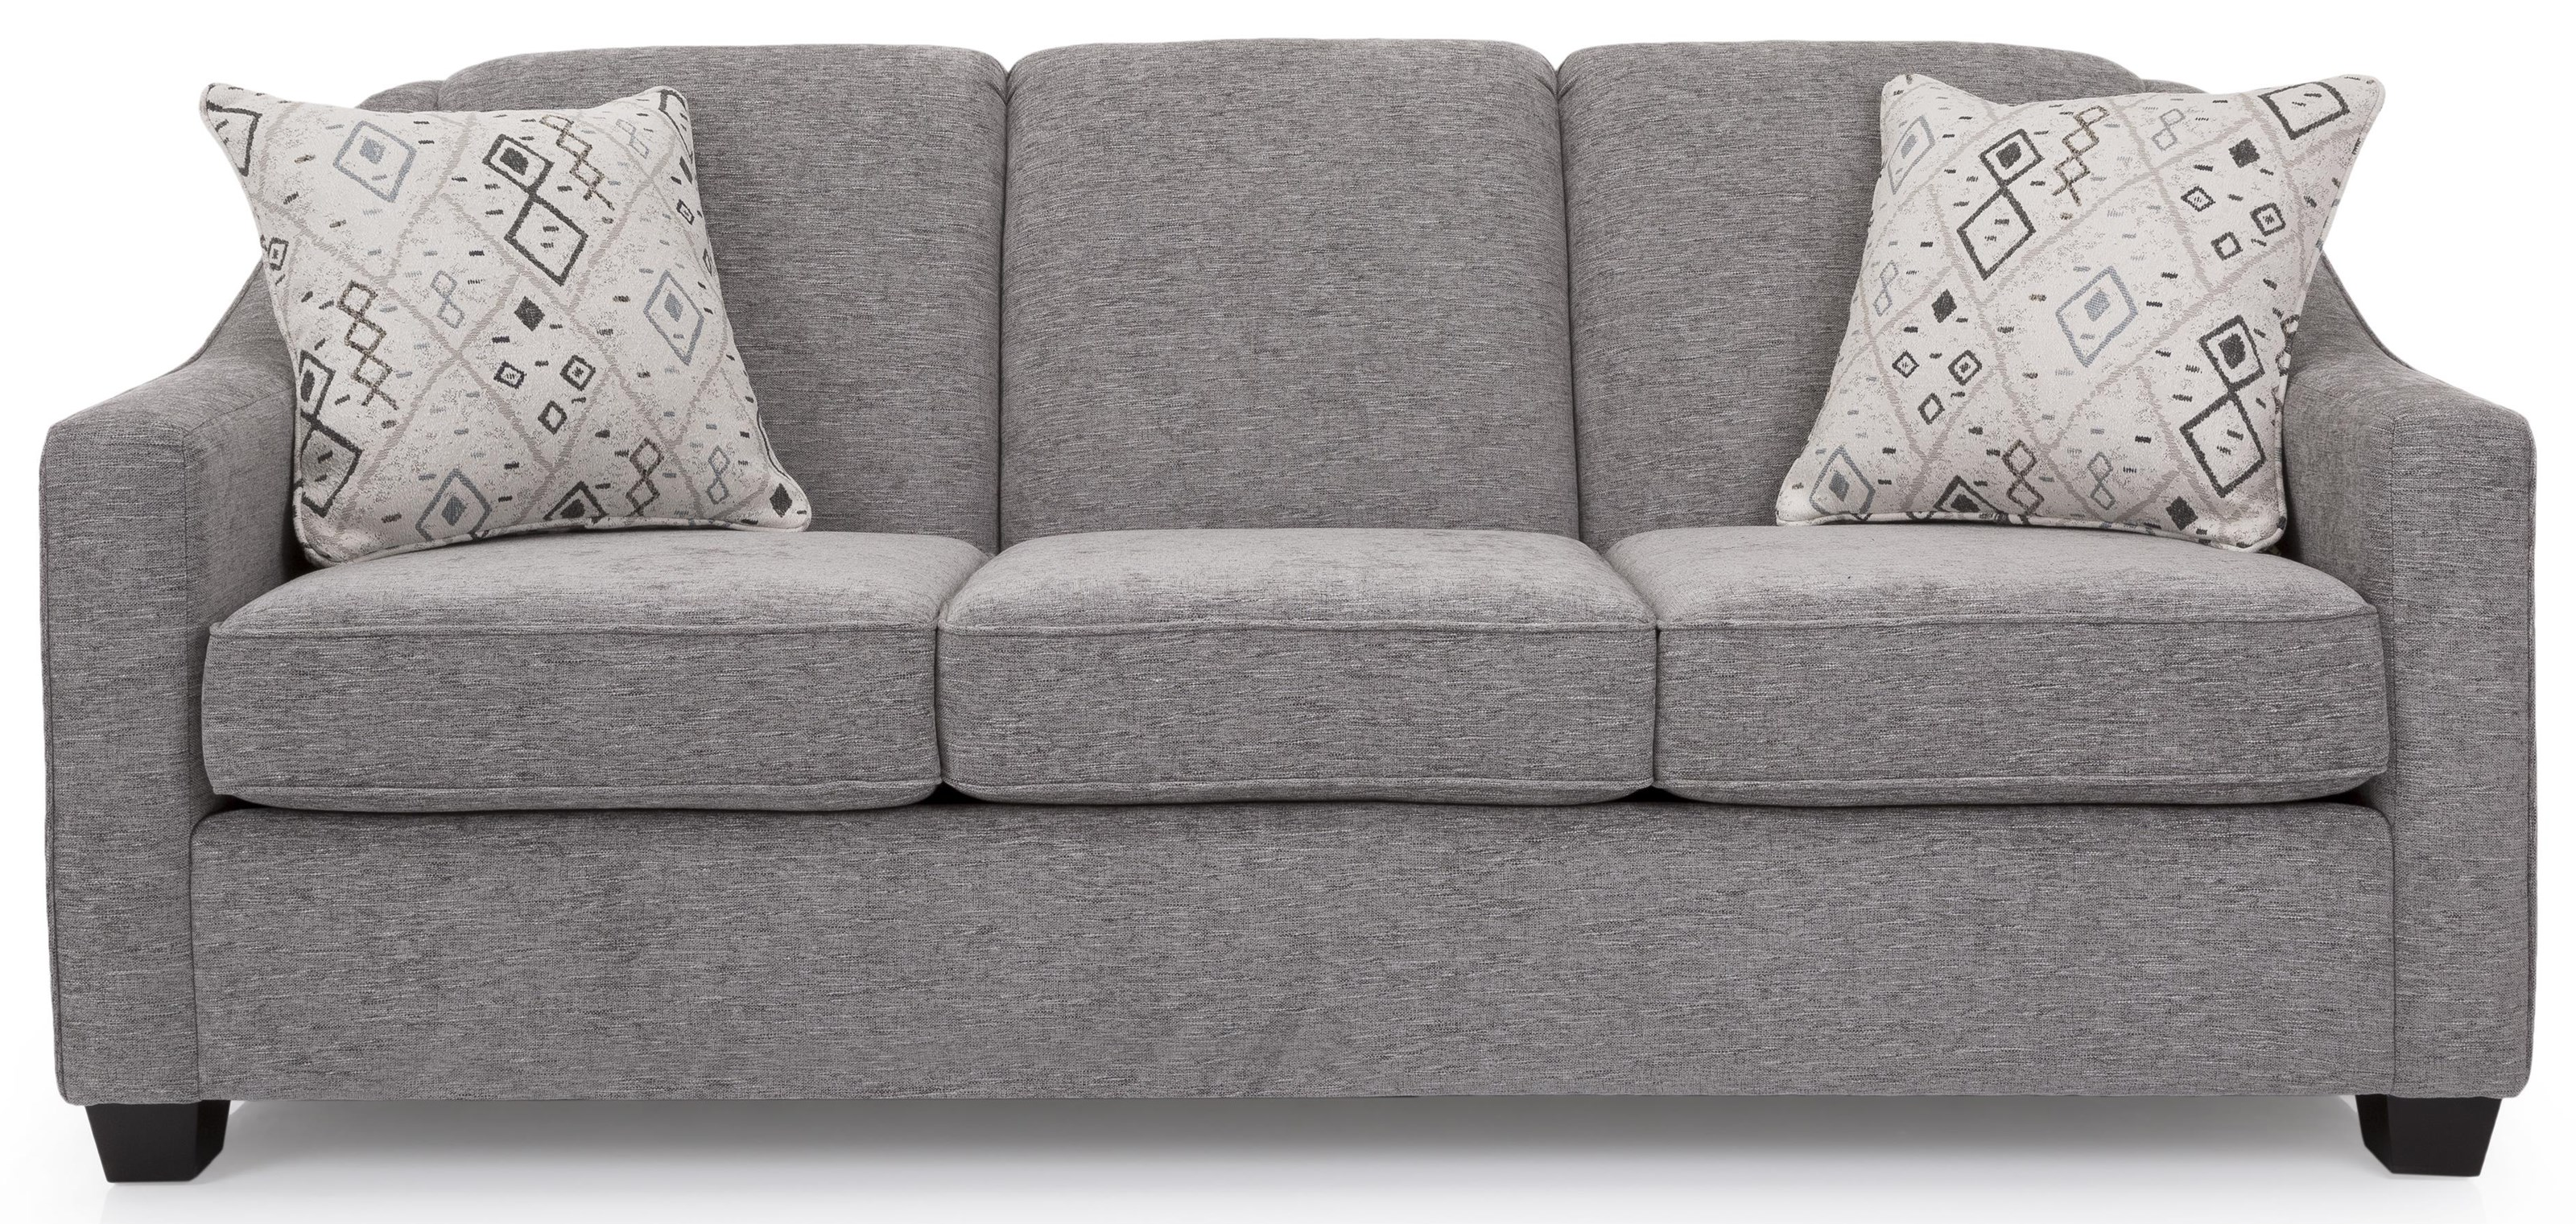 Rico Sofa by Taelor Designs at Bennett's Furniture and Mattresses